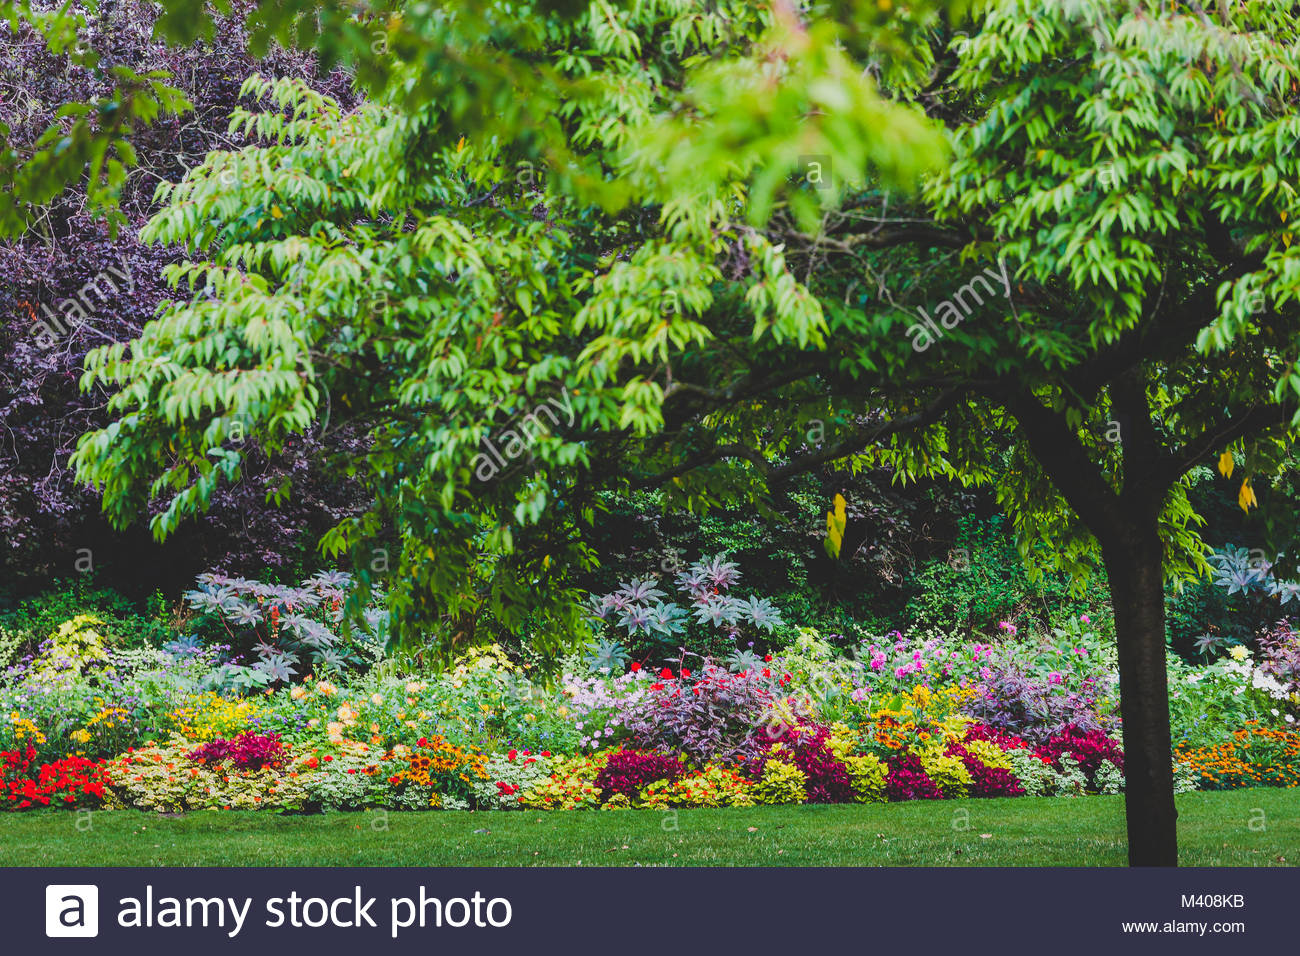 detail of lushy green city park with lines of trees with colorful flowers (location Green Park London) - Stock Image